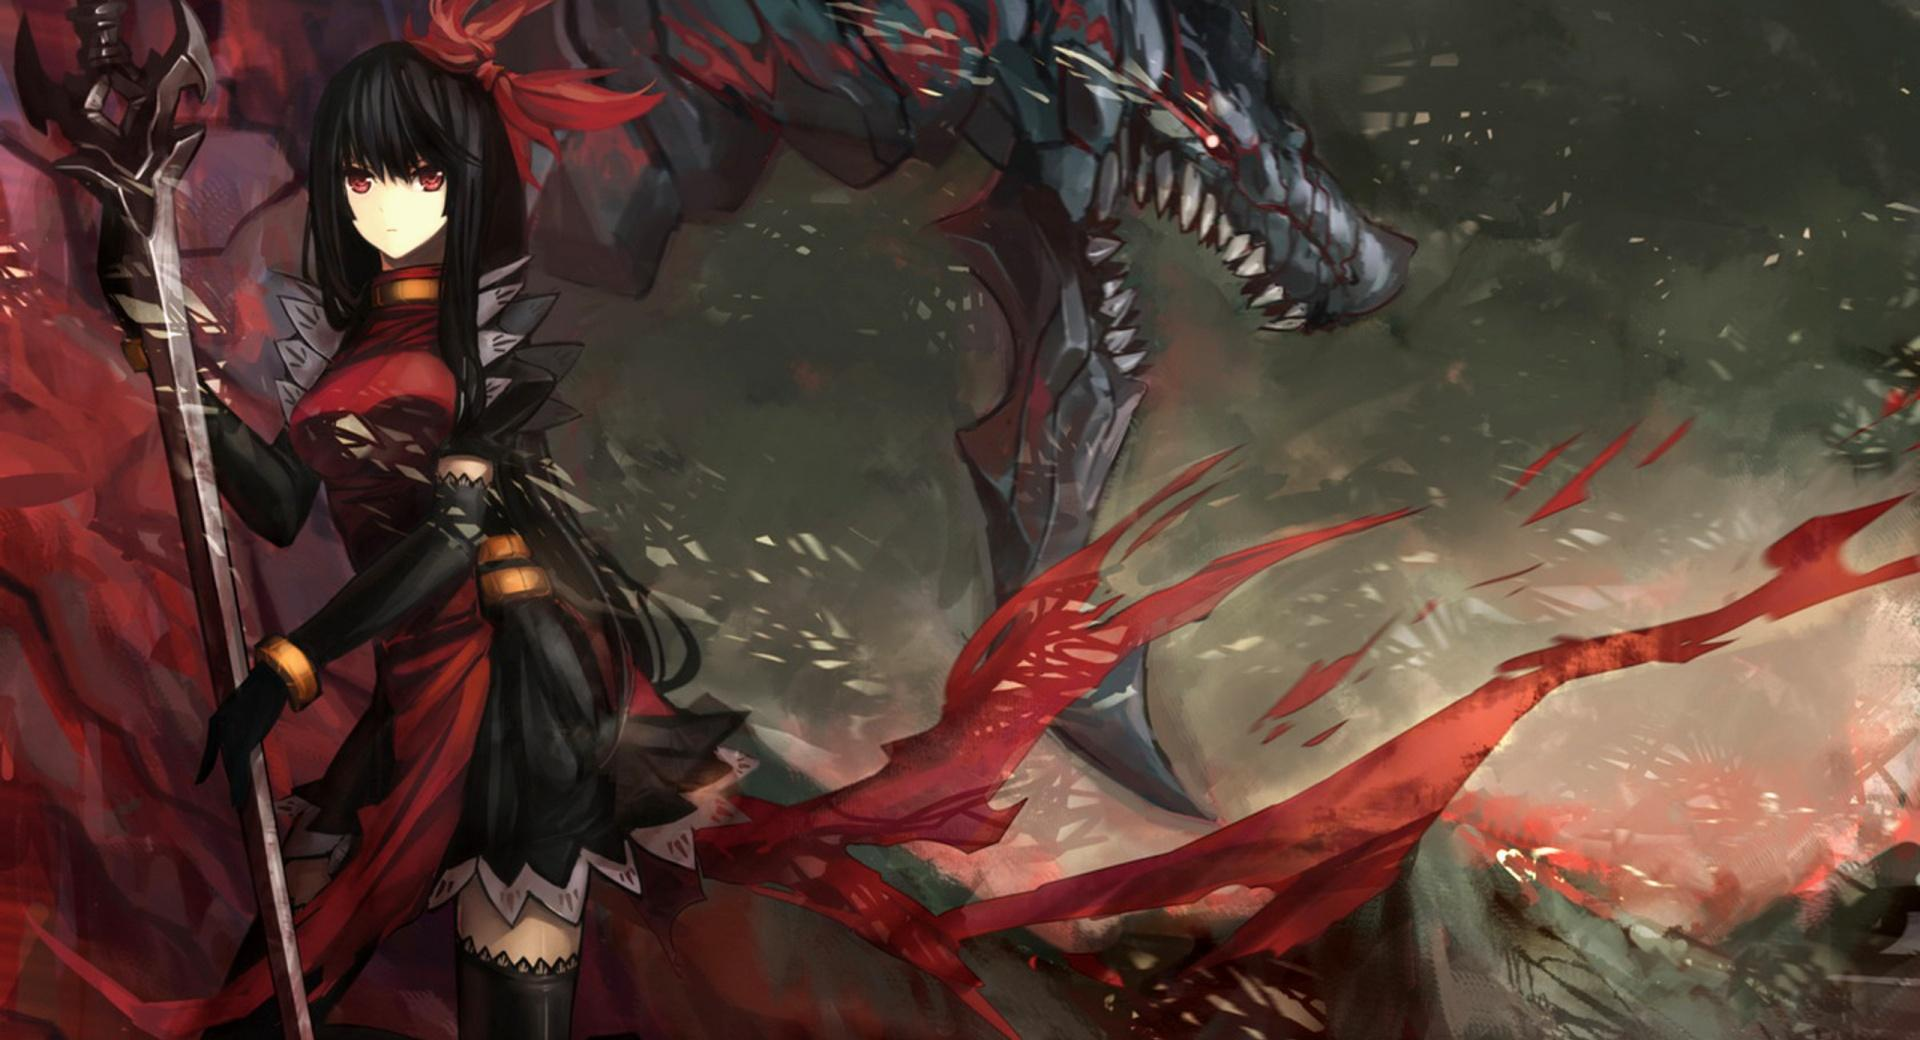 Warrior Fighting A Dragon wallpapers HD quality